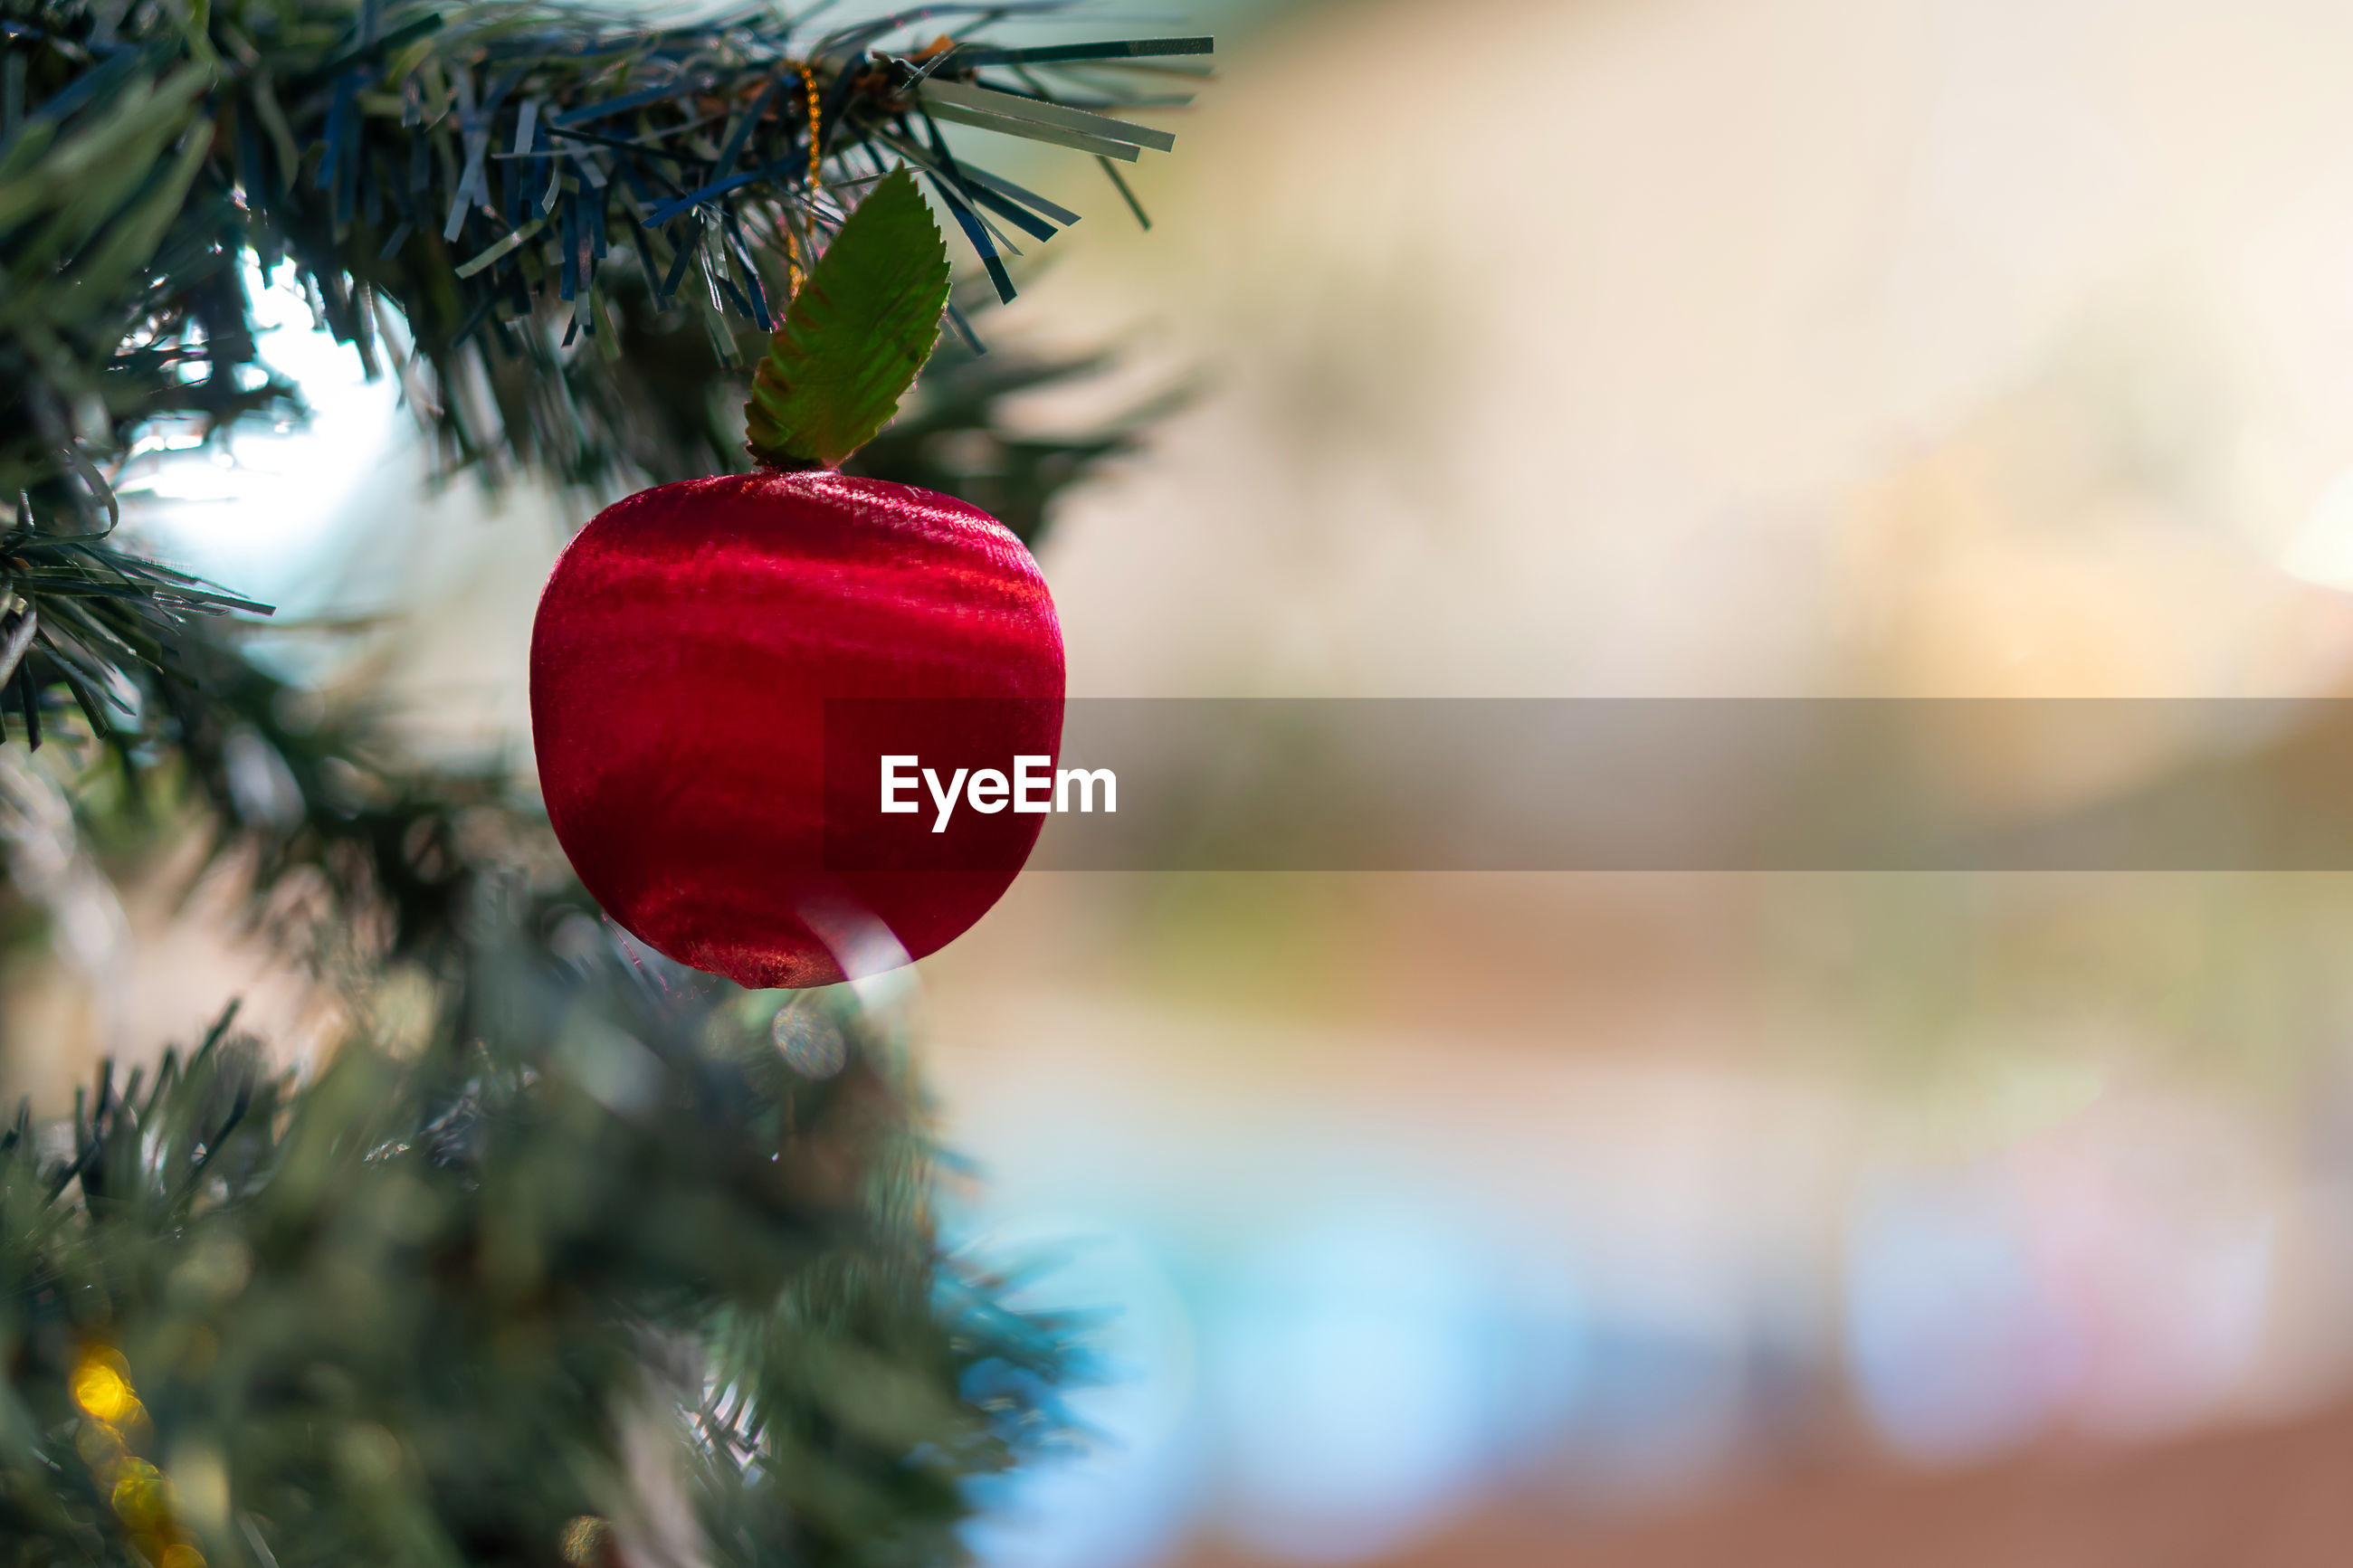 CLOSE-UP OF CHRISTMAS DECORATIONS HANGING ON TREE AGAINST BLURRED BACKGROUND